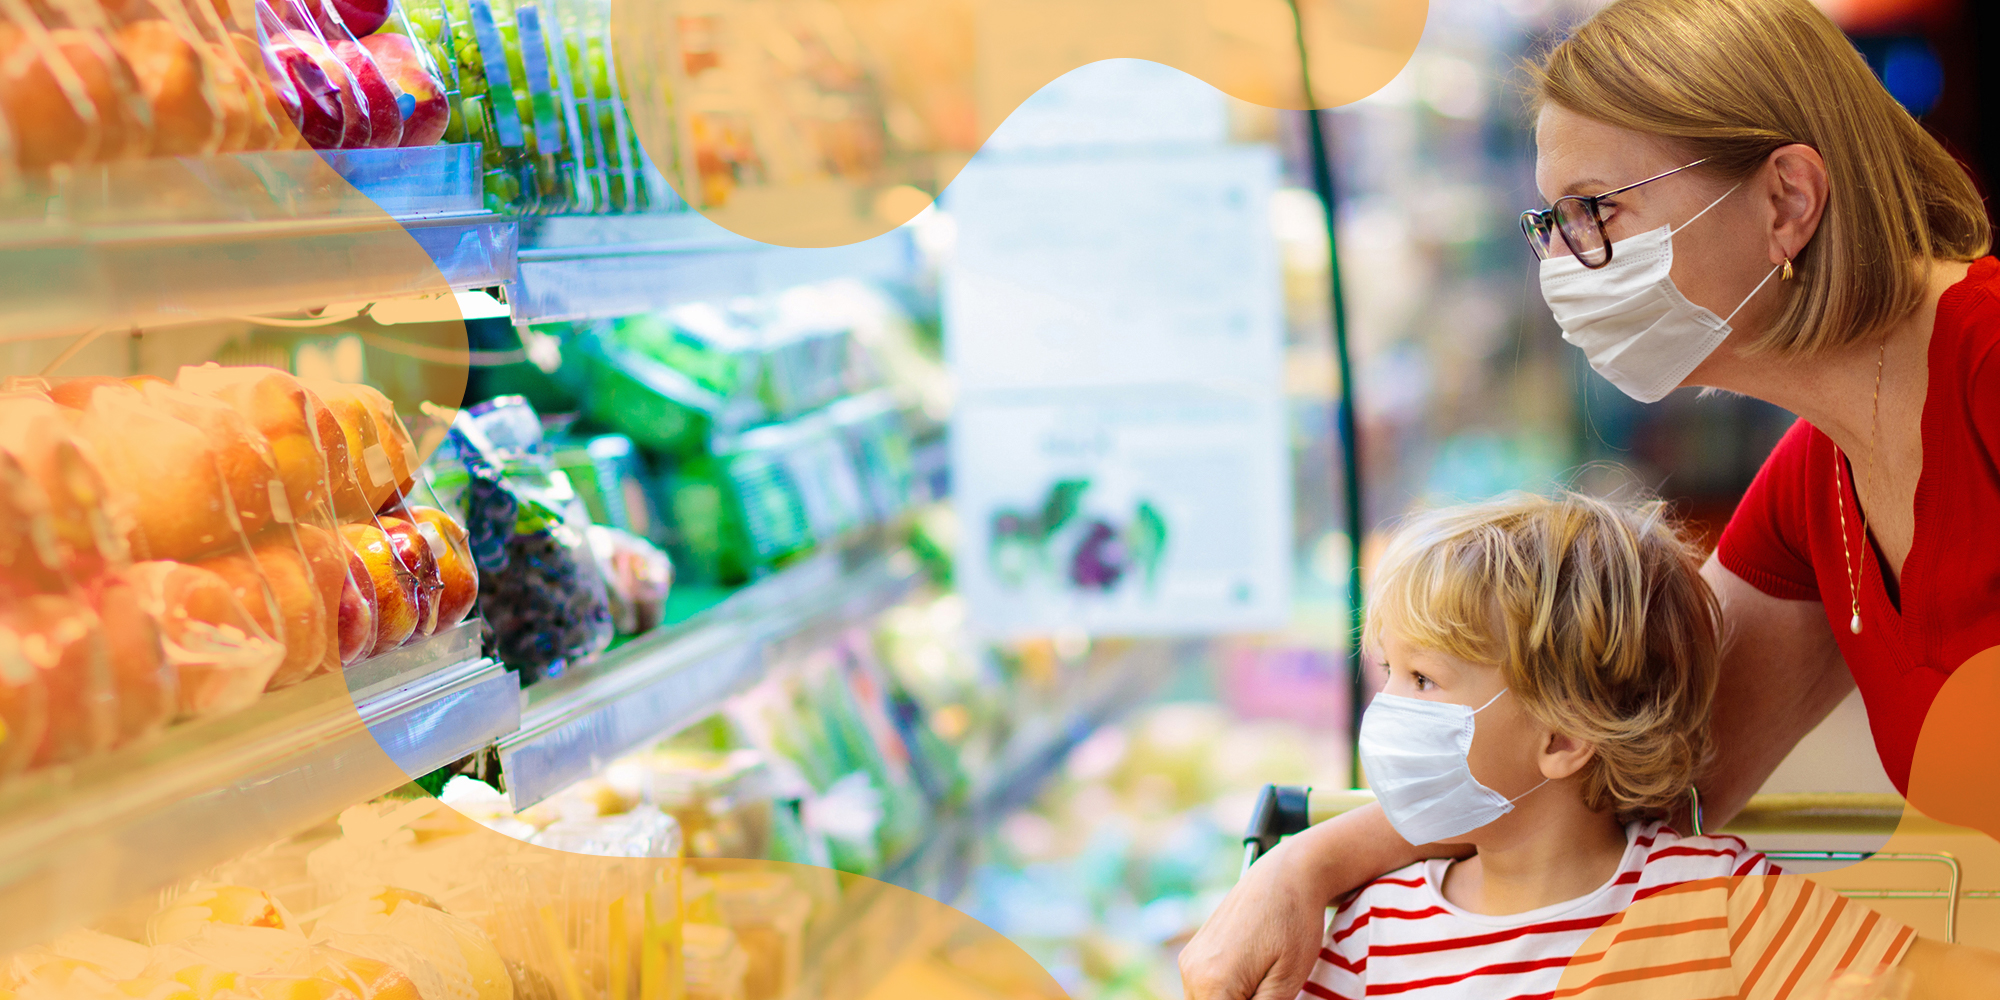 mother and child grocery shopping while wearing covid face coverings